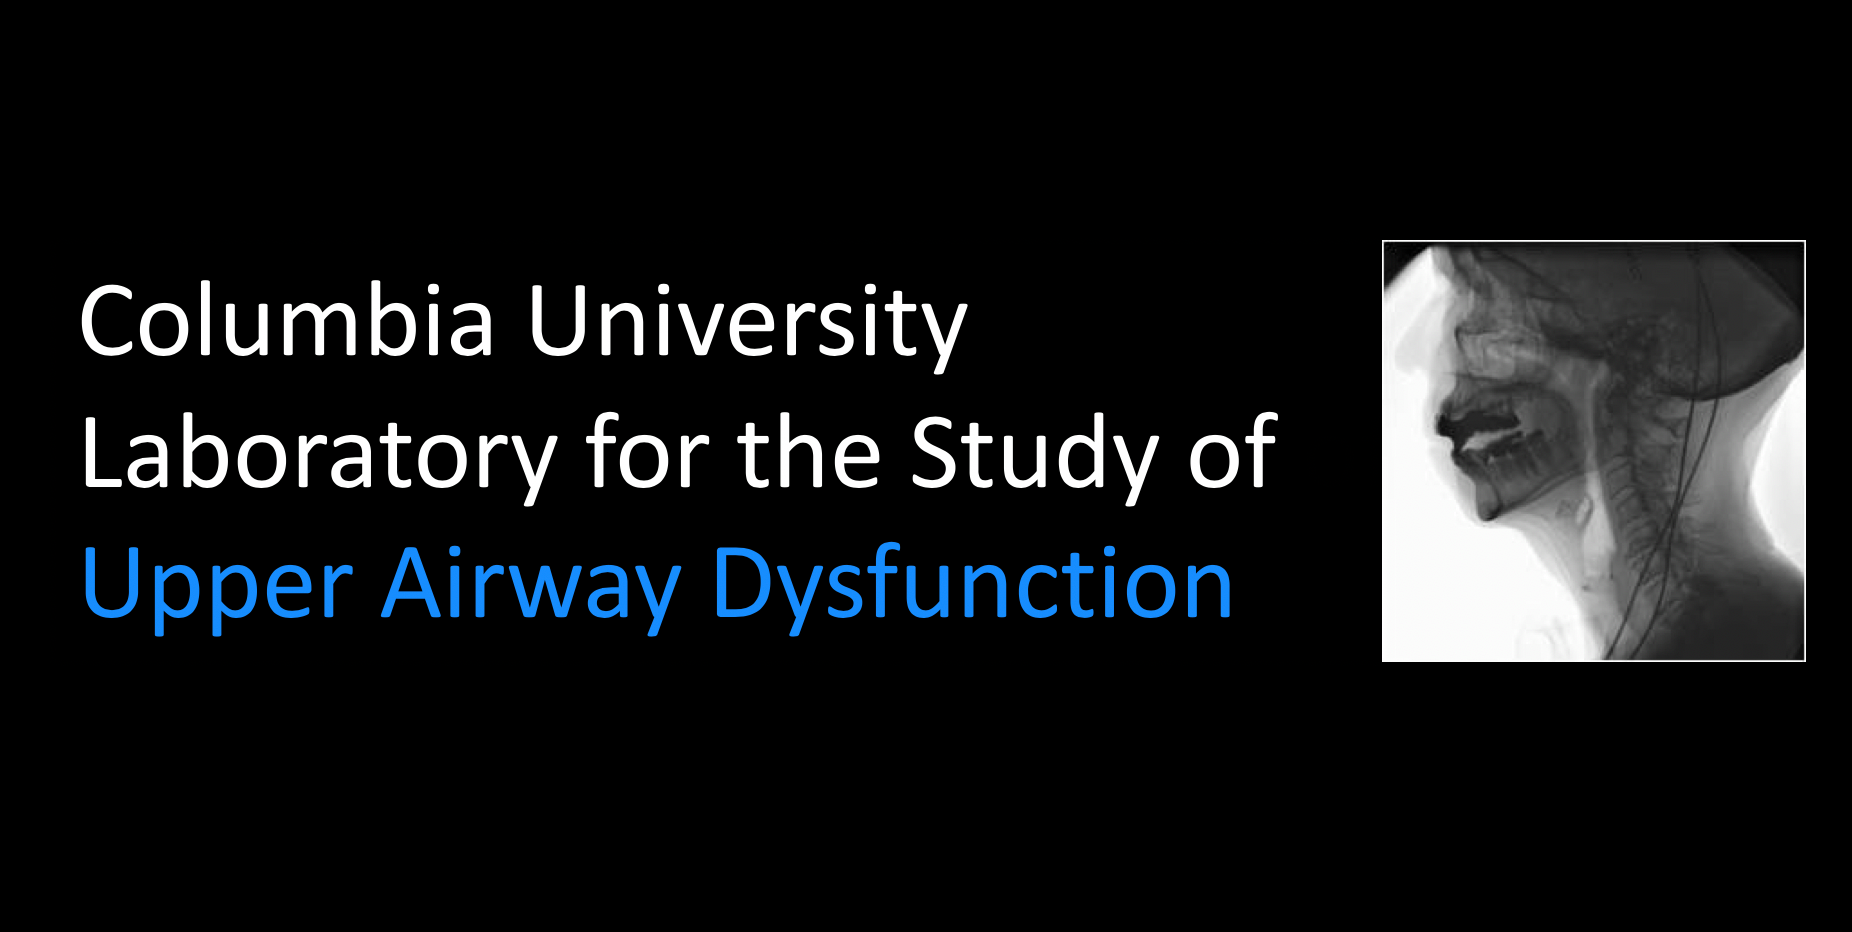 Columbia University Laboratory for the Study of Upper Airway Dysfunction